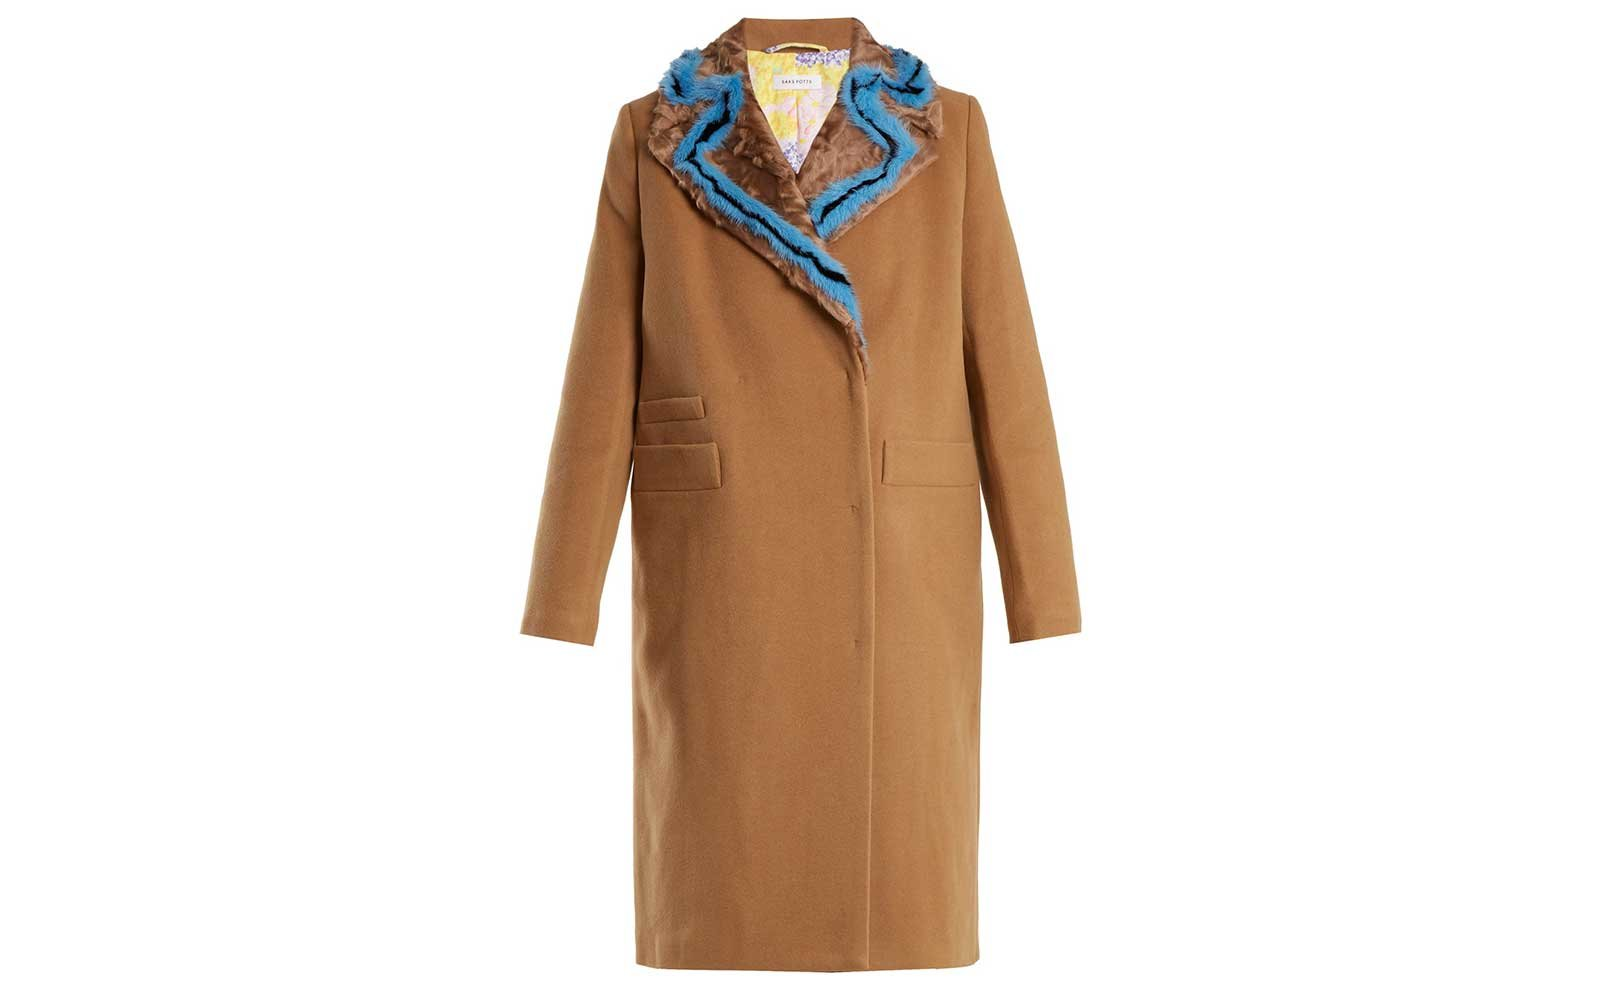 5db05953e The 21 Best Coats for Staying Warm This Season | Travel + Leisure